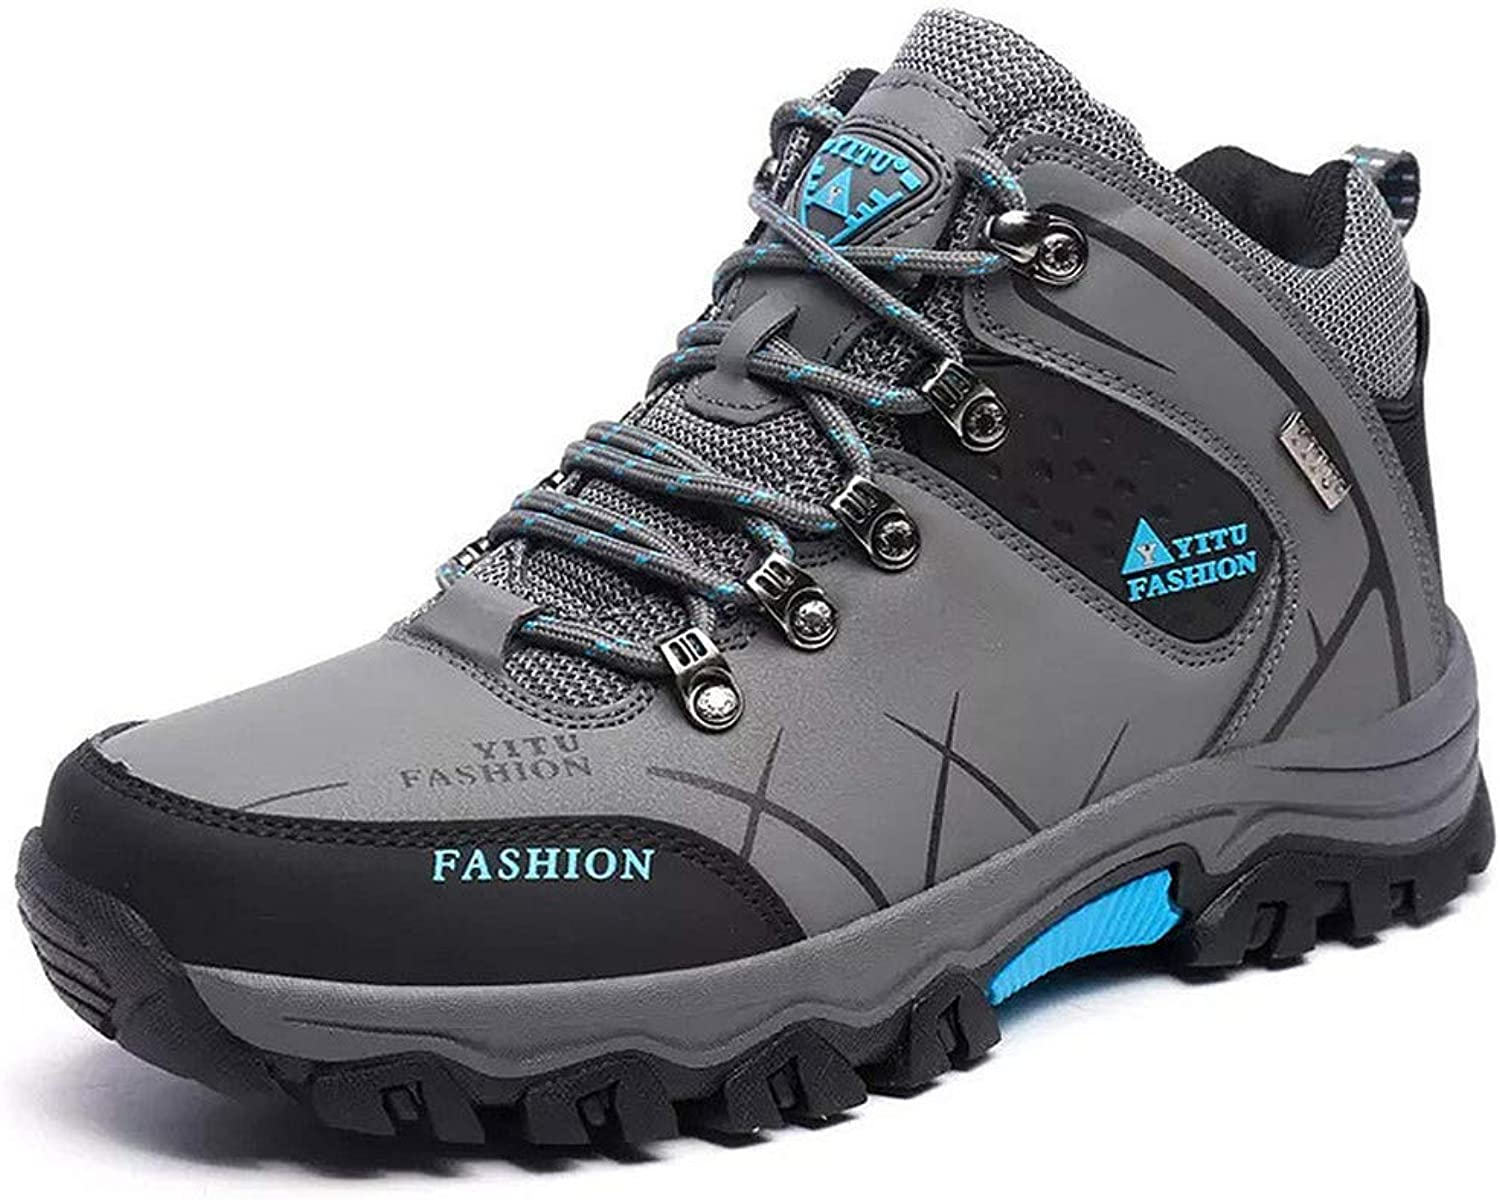 TECHWILL Men's Hiking Boots Suede Leather Outdoor Waterproof Backpacking shoes bluee